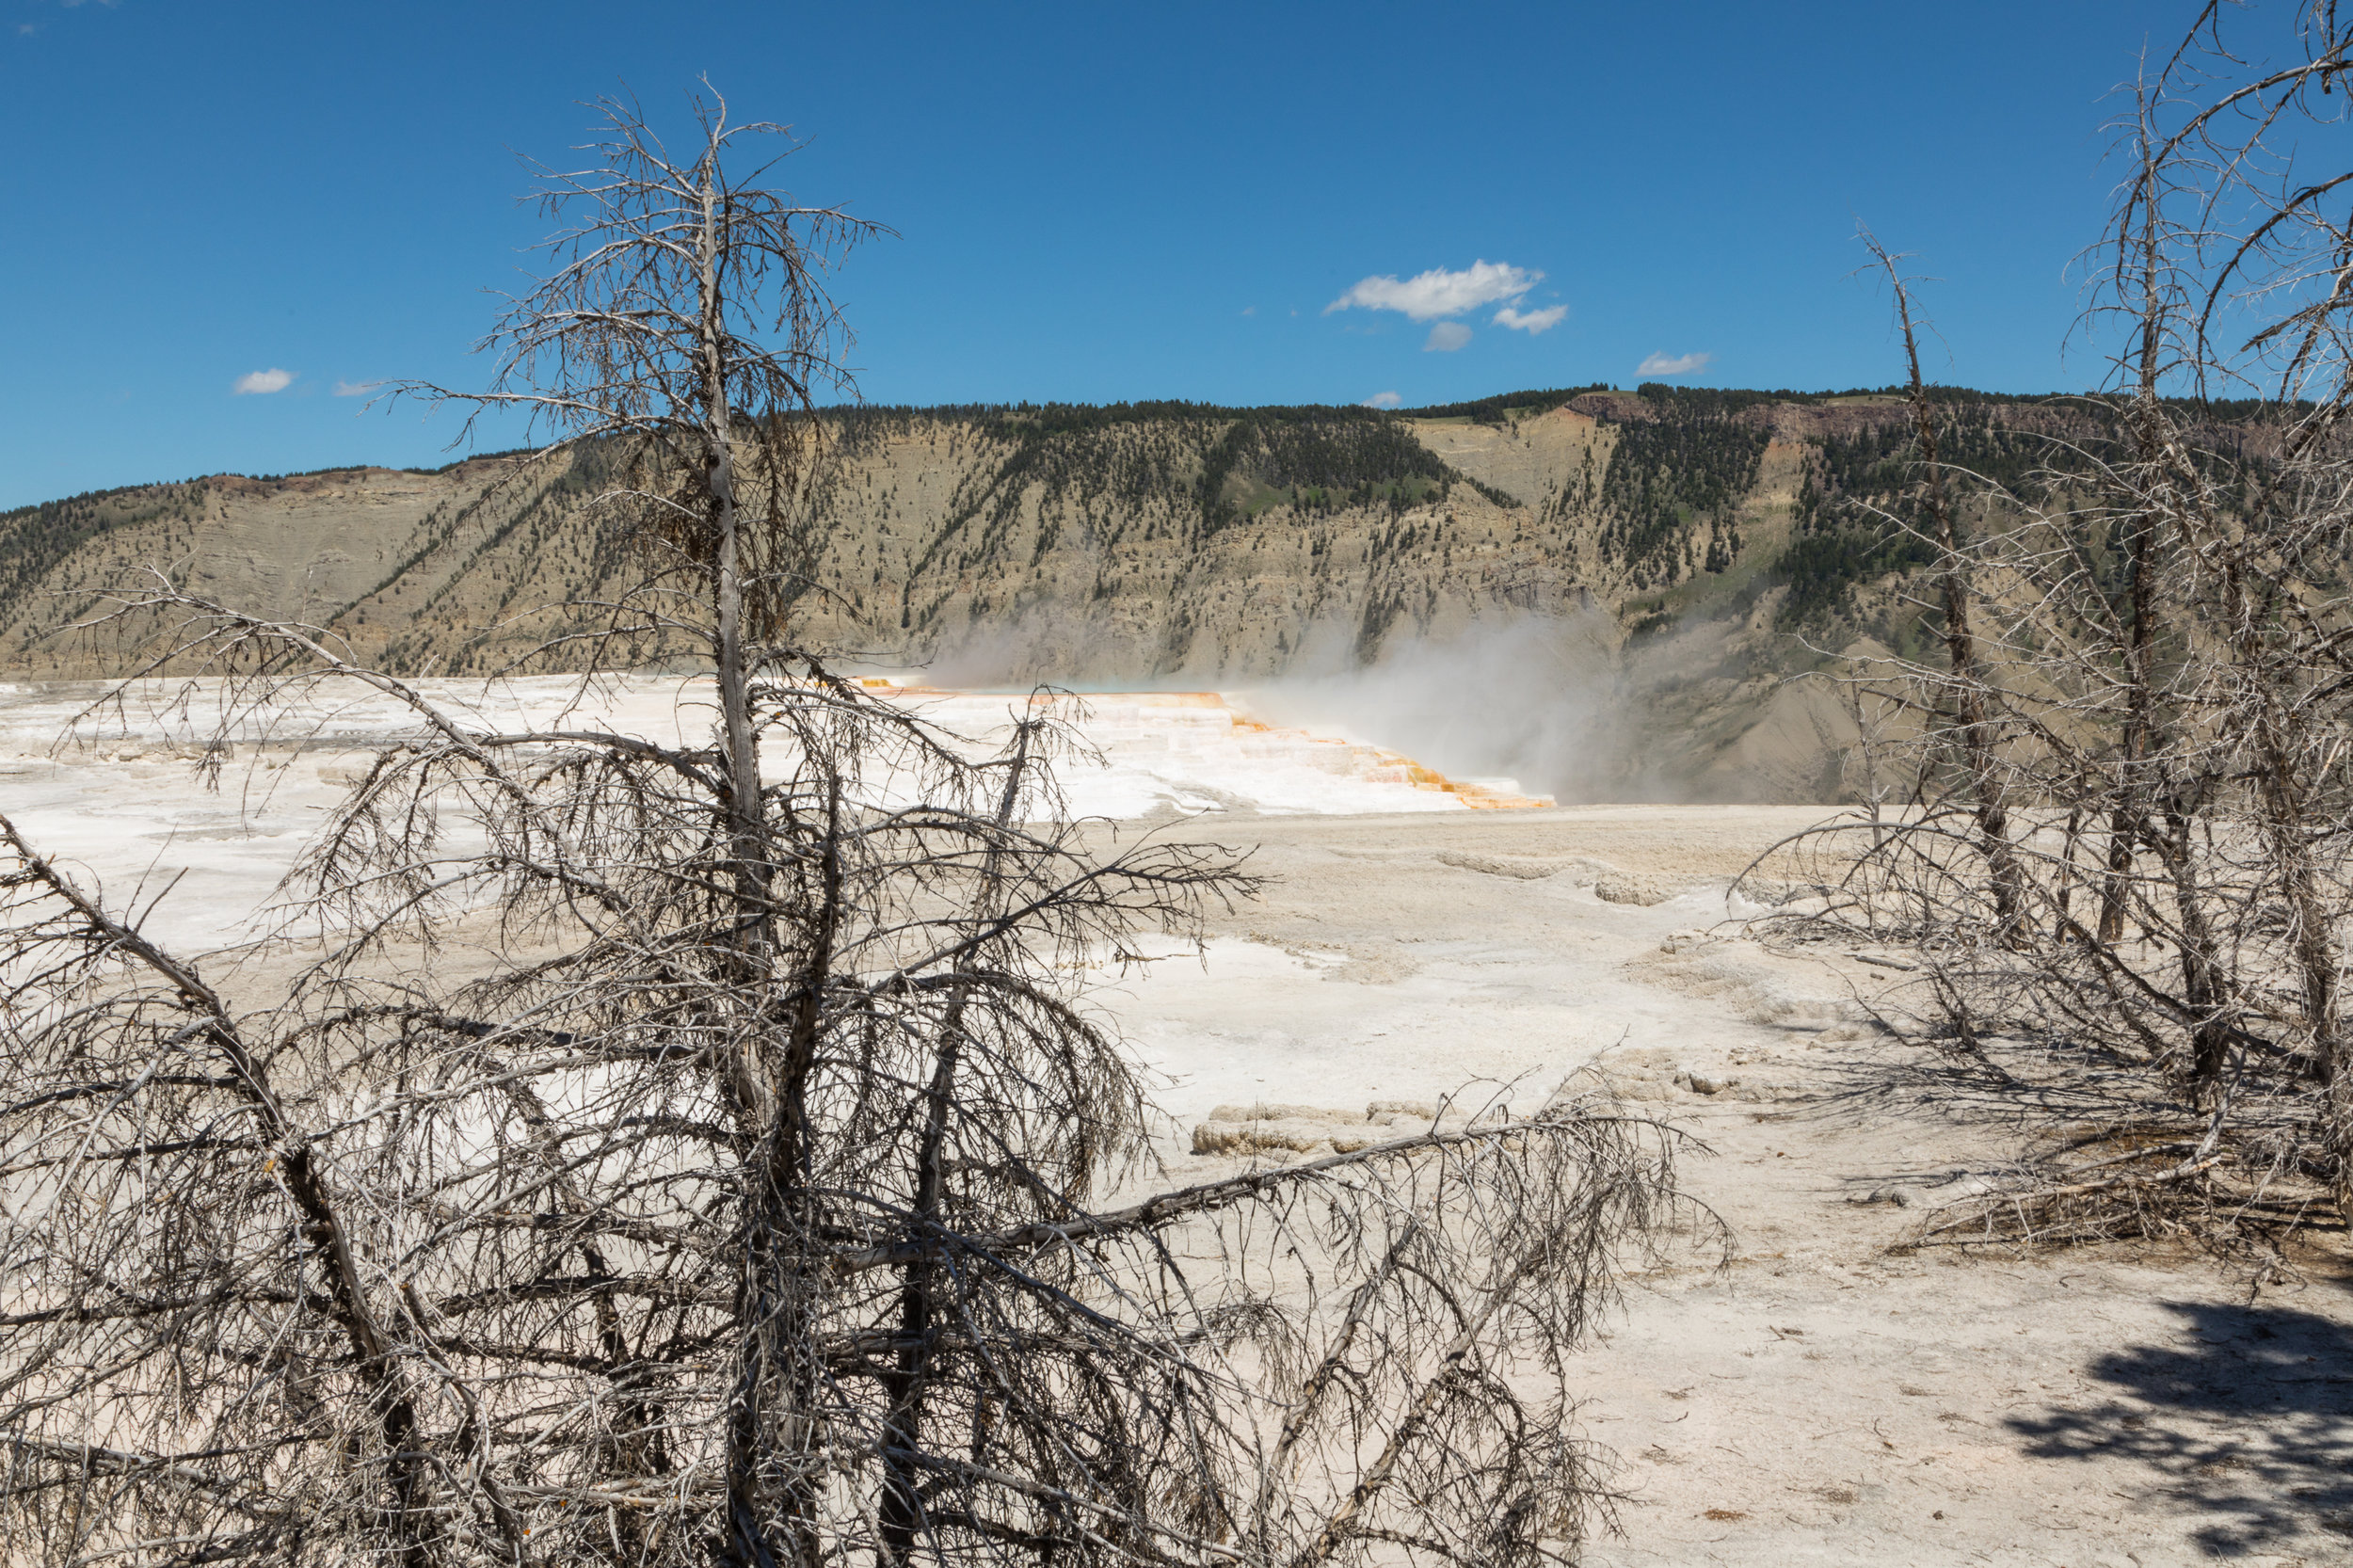 Mammoth Hot Springs, Yellowstone National Park, Image # 7397